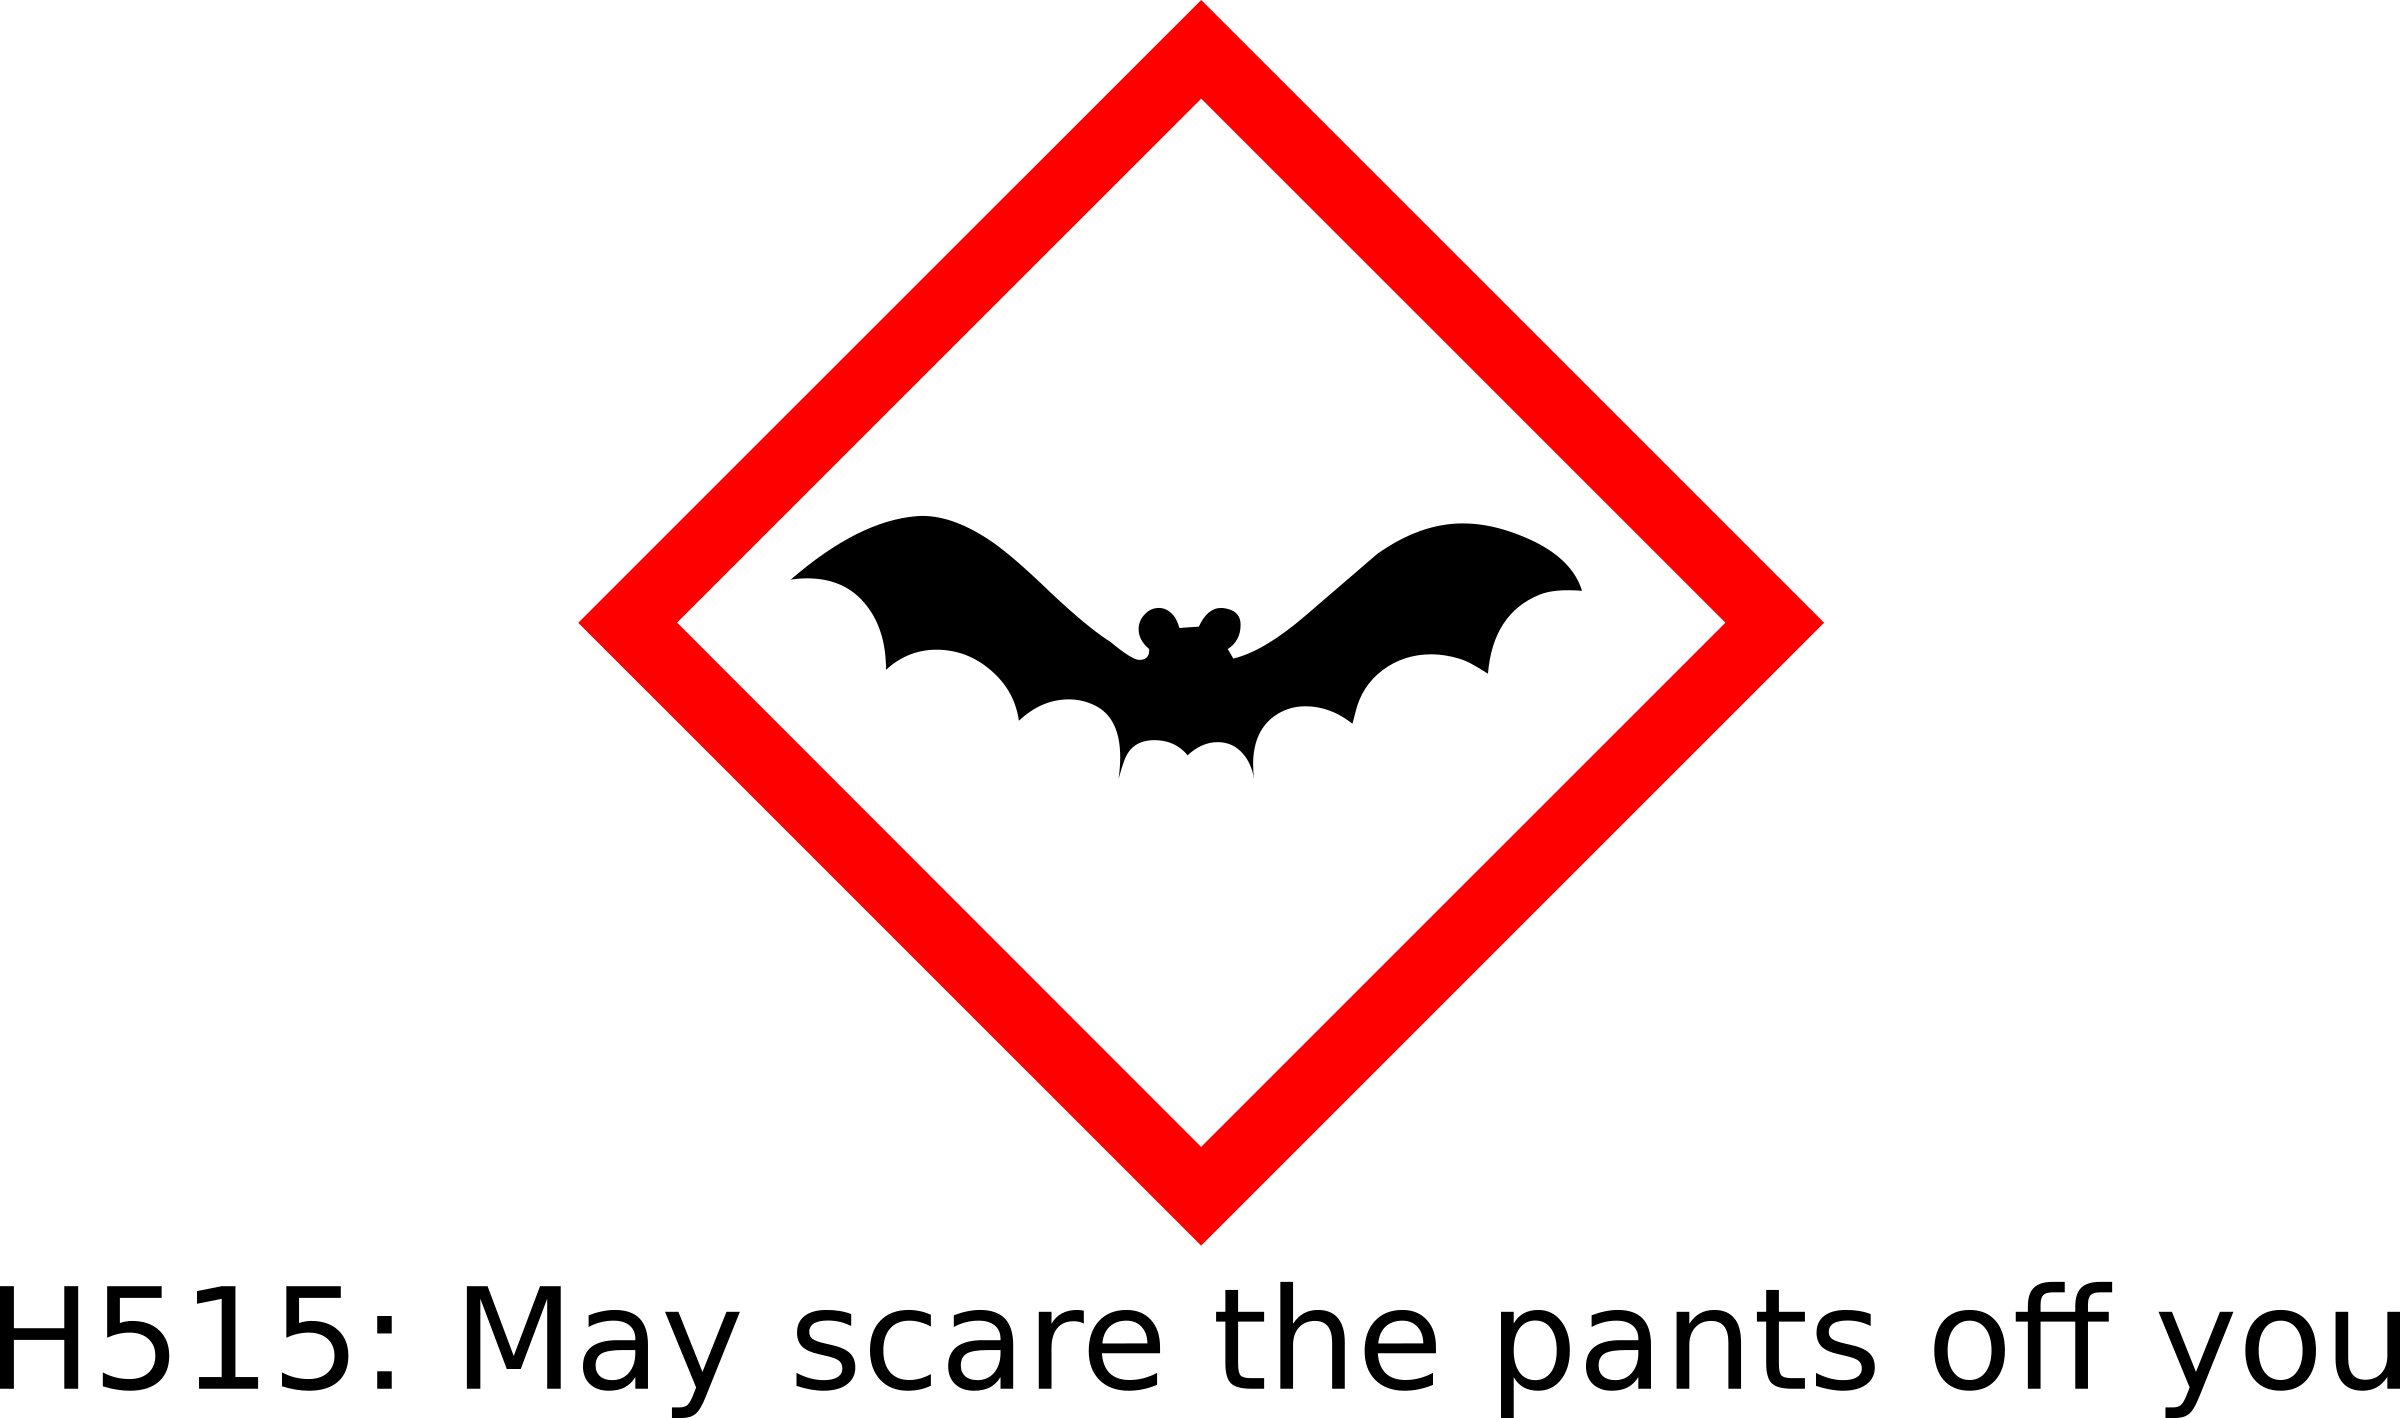 Bat hazard by Firkin